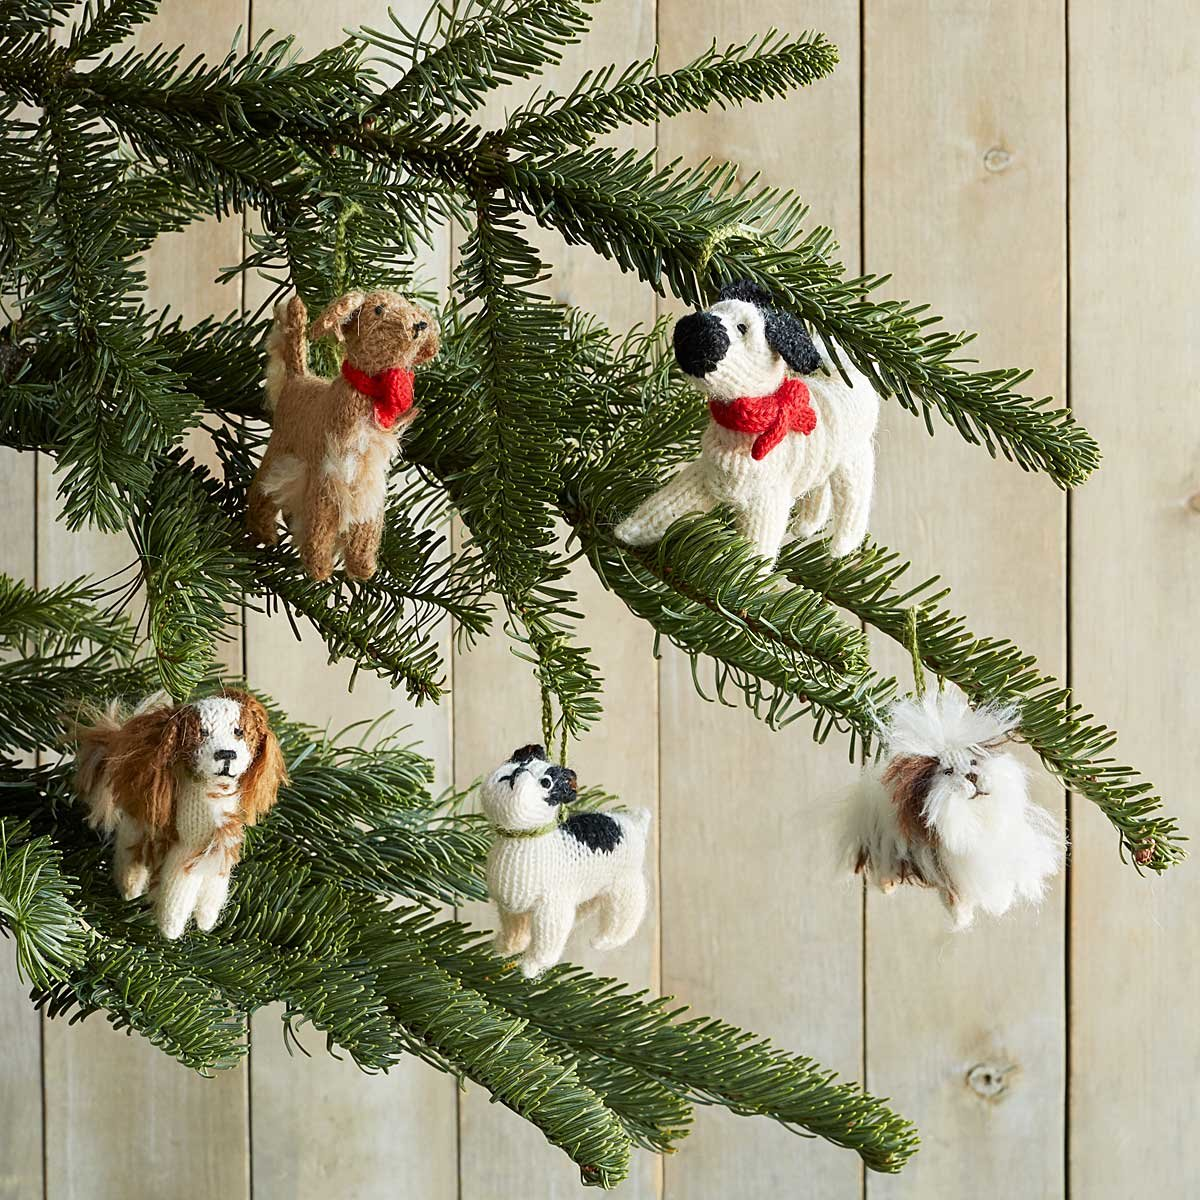 Gifts for Pet Lovers, Unique Pet Gifts | UncommonGoods